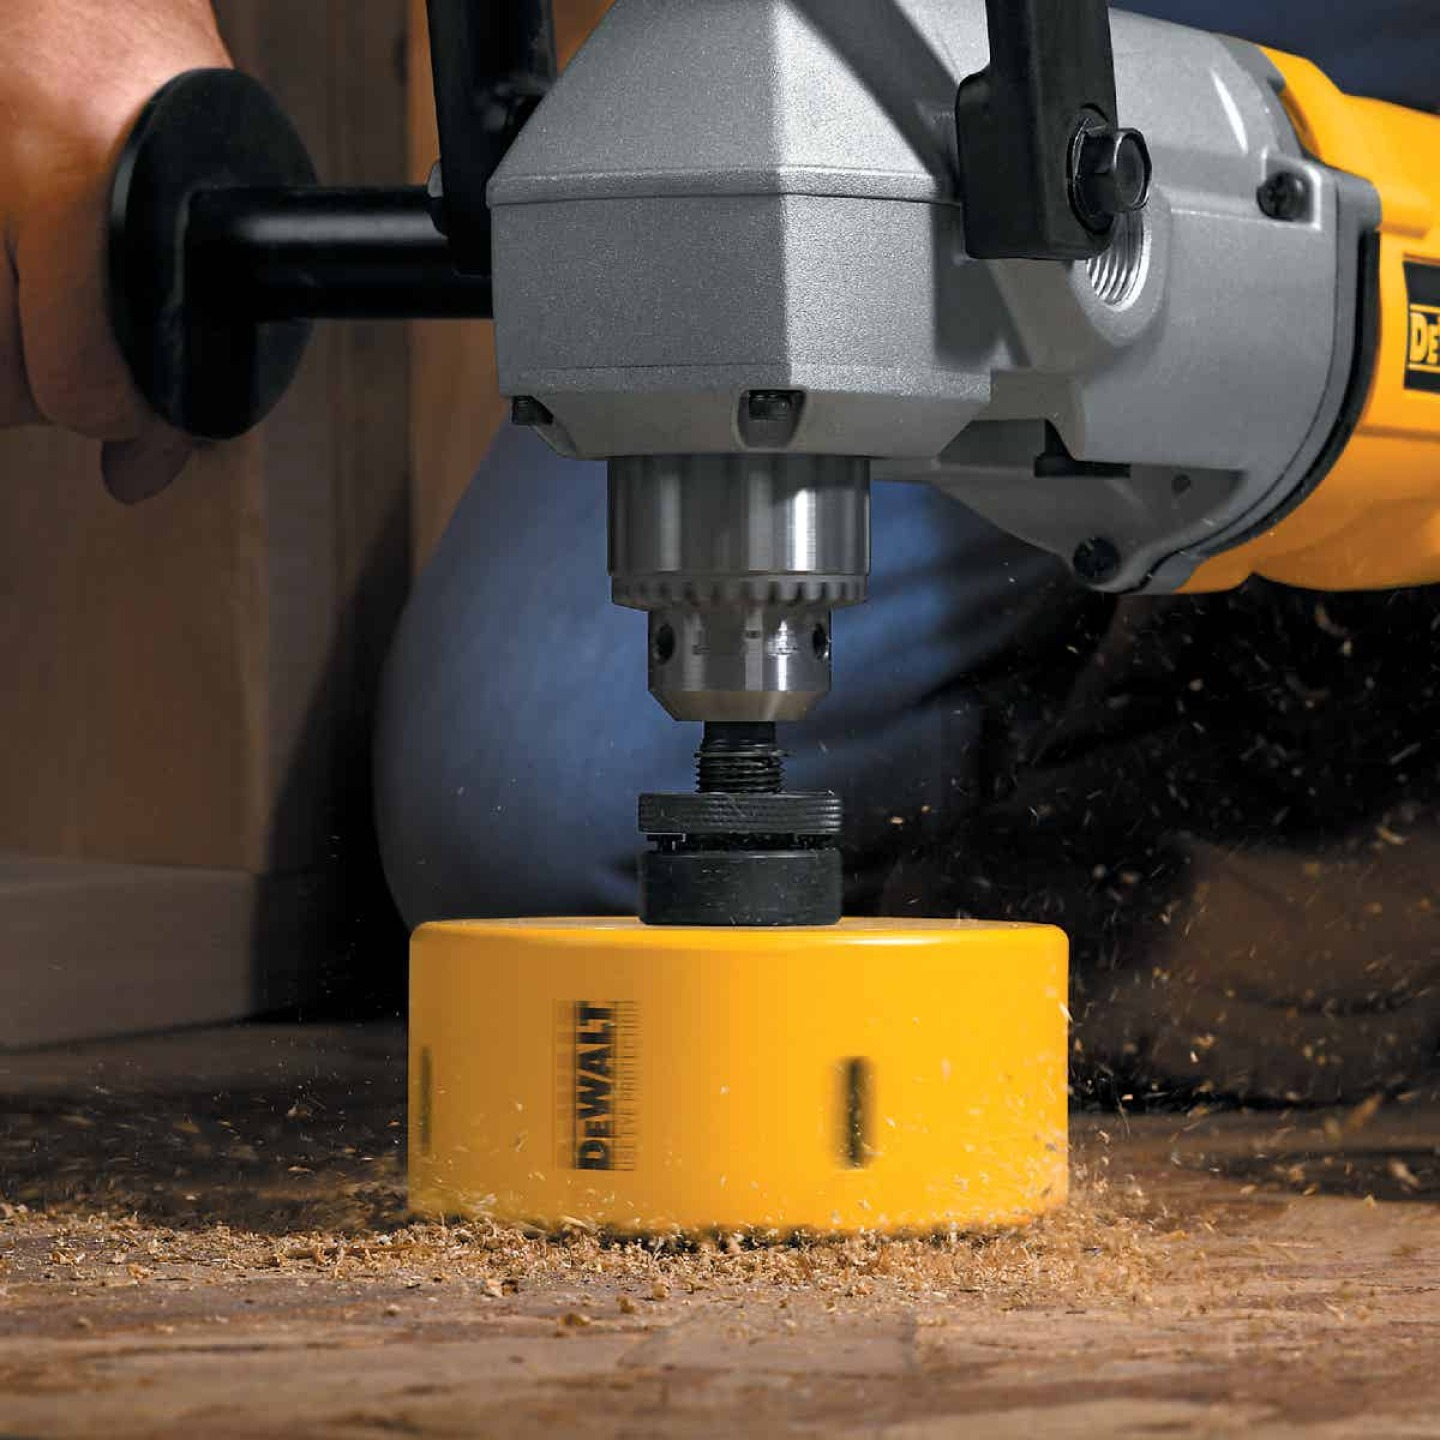 DeWalt 4-1/2 In. Bi-Metal Hole Saw Image 3